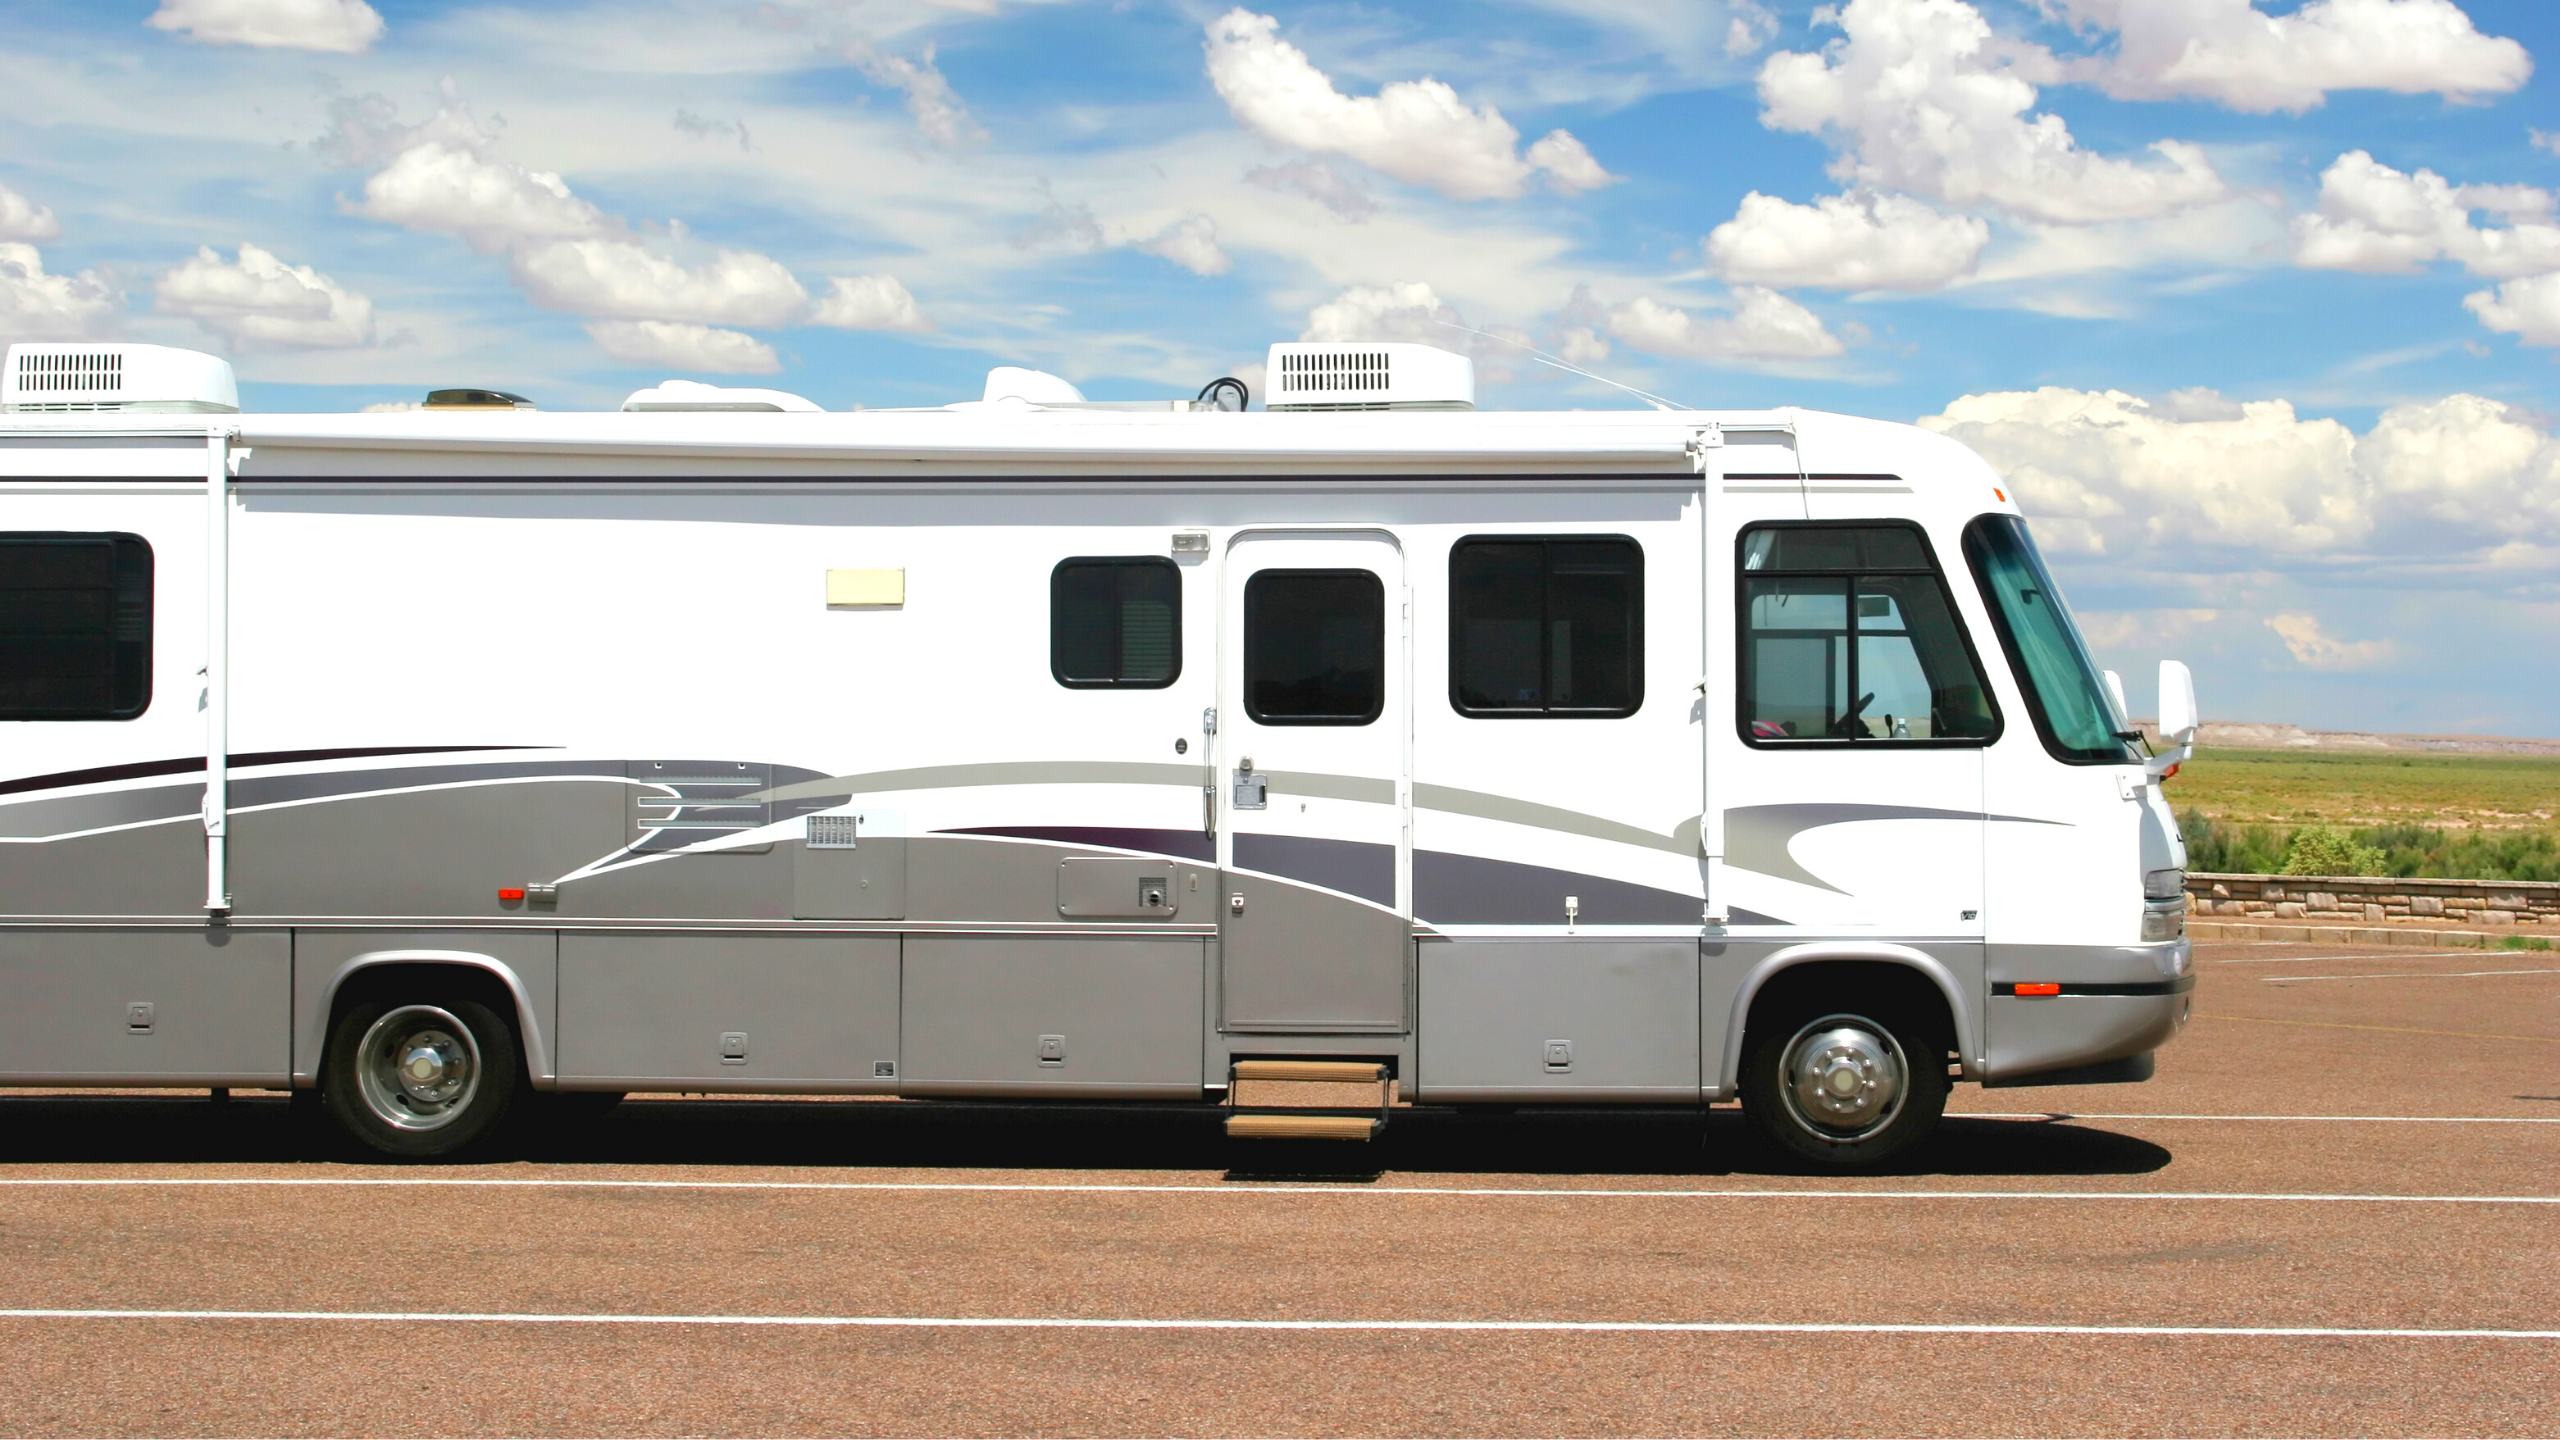 How to Determine the Value of Used RVs